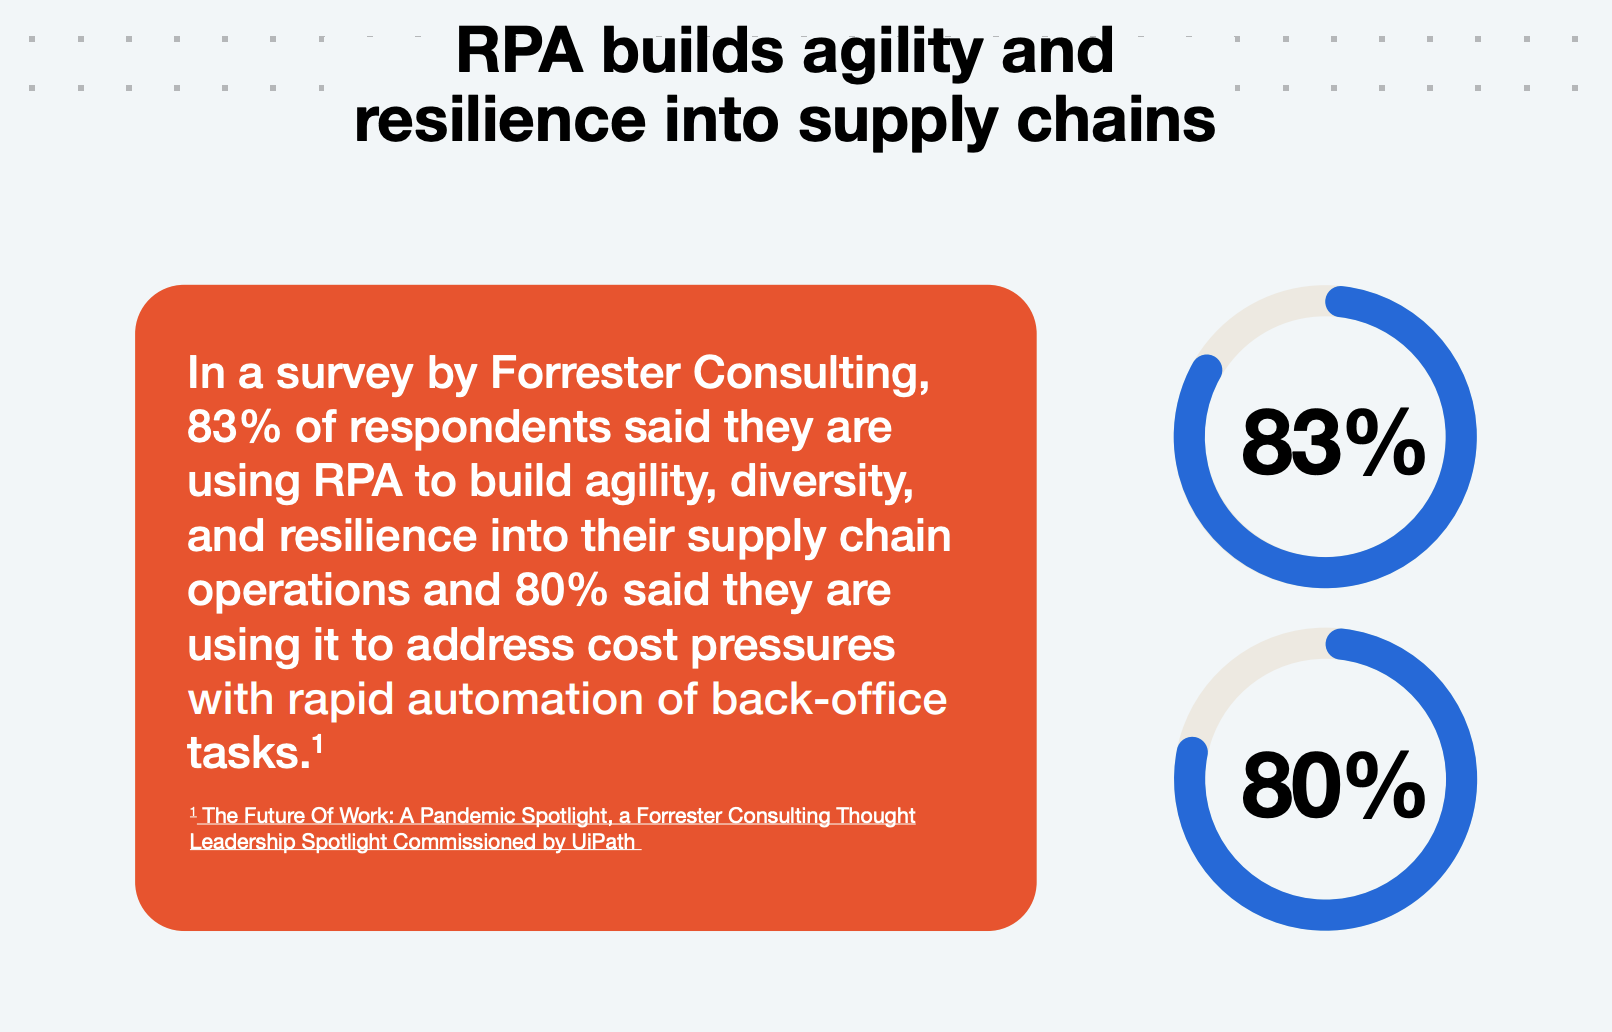 rpa builds agility into supply chains